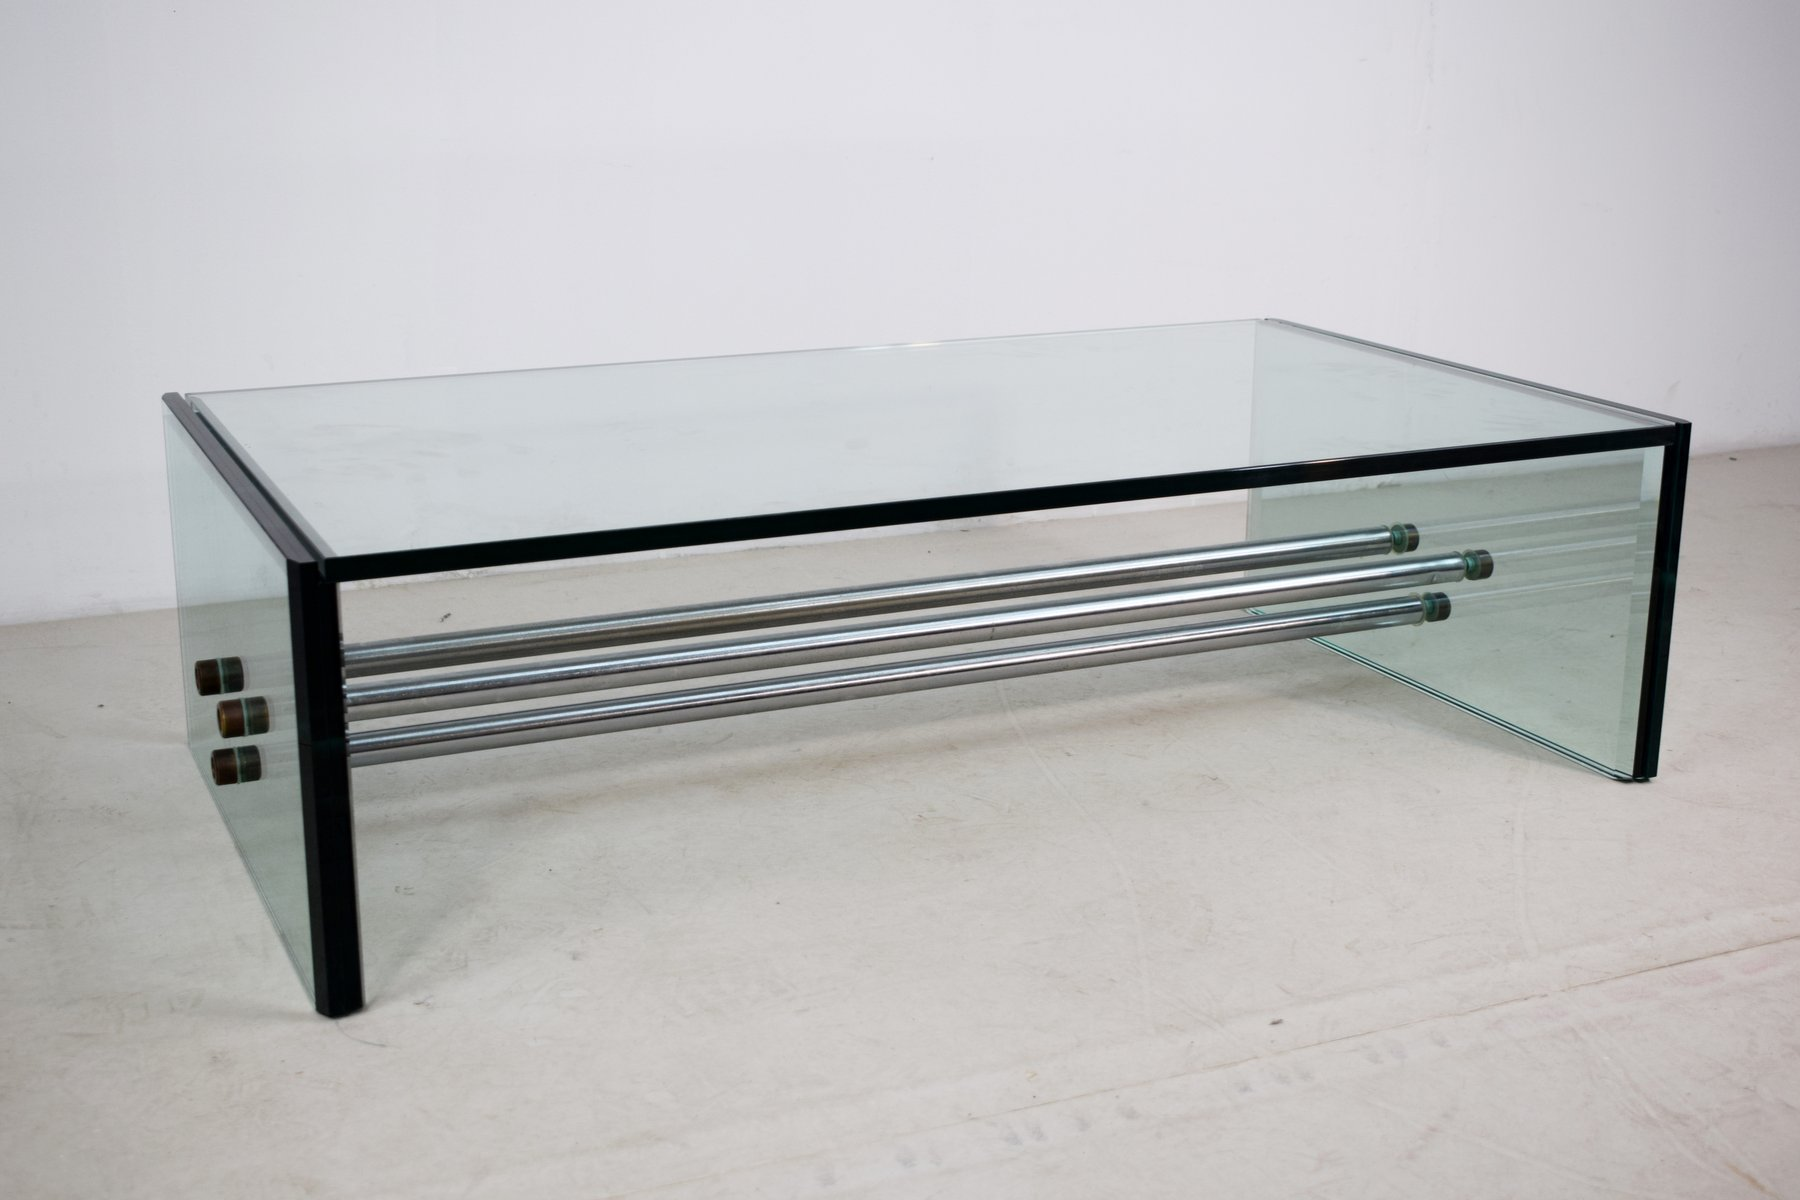 table basse rectangulaire en verre 1970s en vente sur pamono. Black Bedroom Furniture Sets. Home Design Ideas